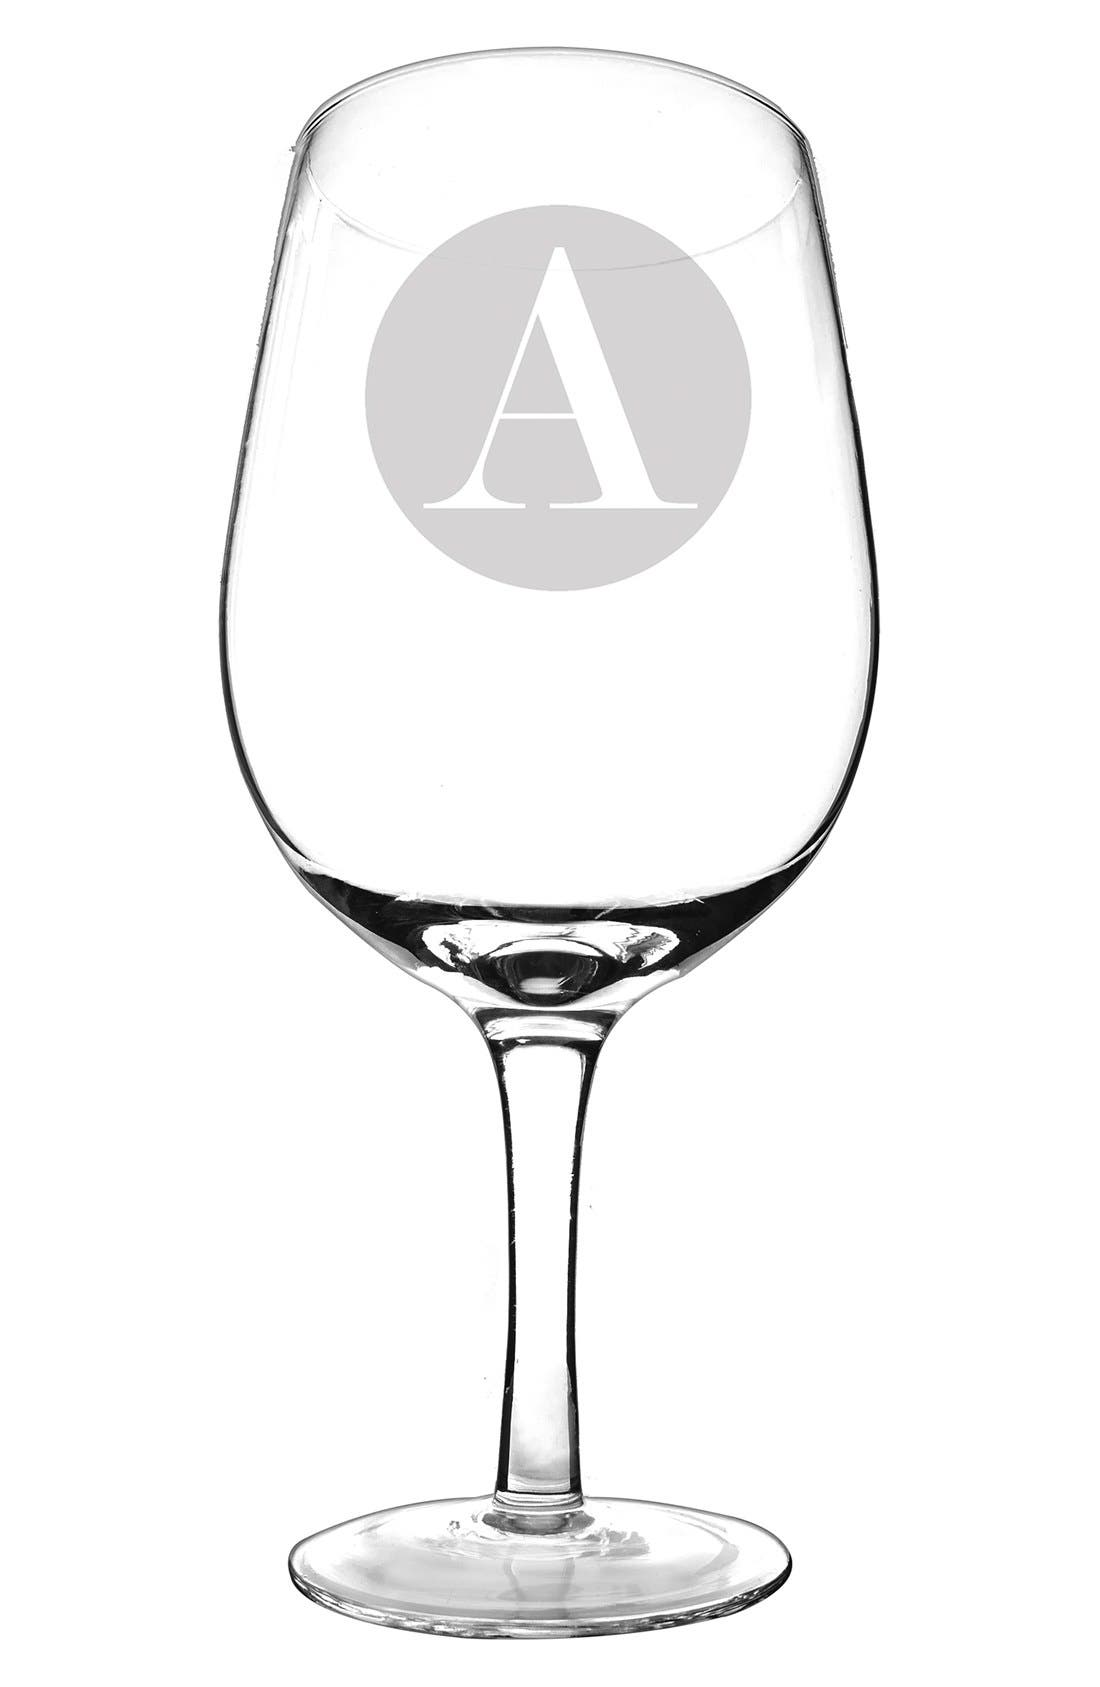 Cathy's Concepts Monogram 'XL' Novelty Wine Glass